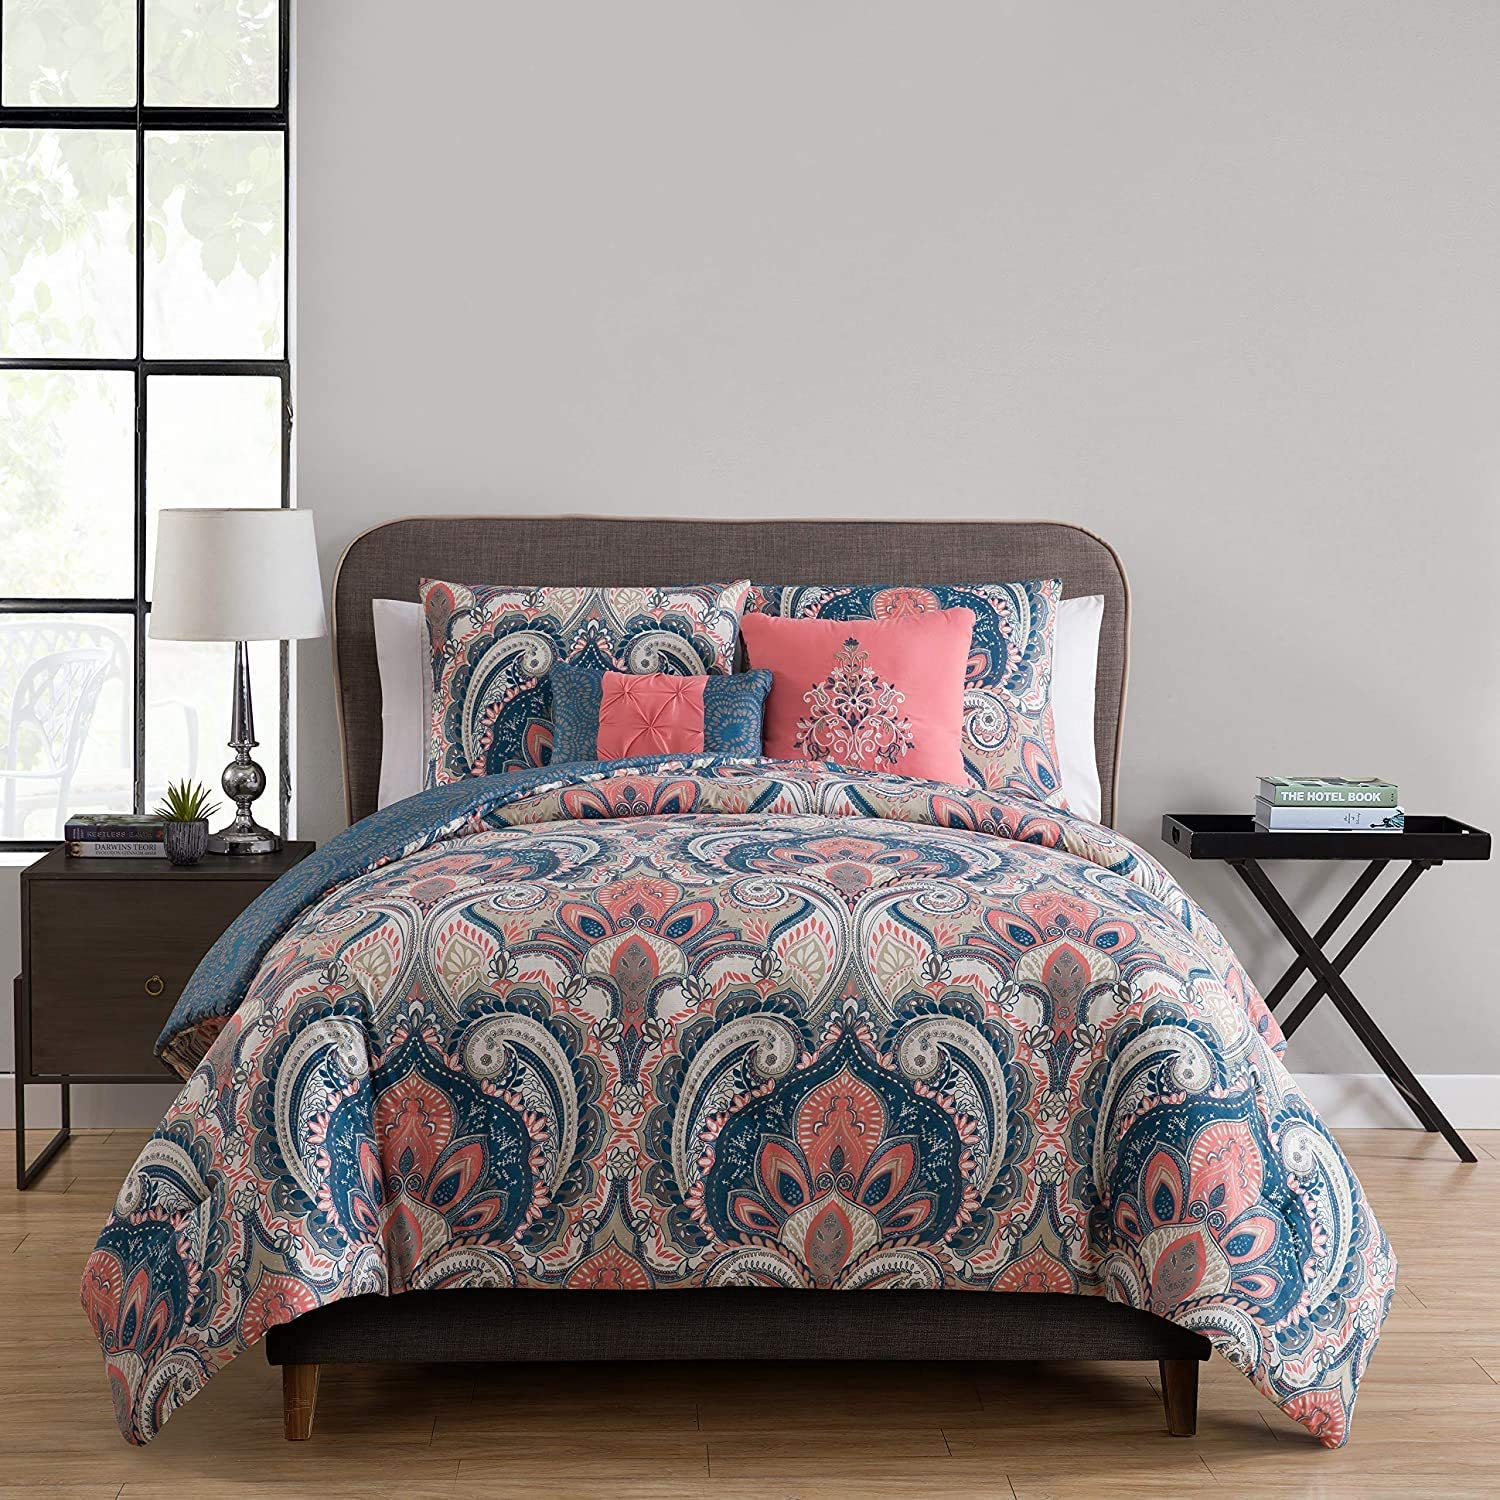 VCNY Home Casa Real Collection Comforter Soft & Cozy Bedding Set, Stylish Chic Design for Home Décor, Machine Washable, King, Coral, 5 Piece